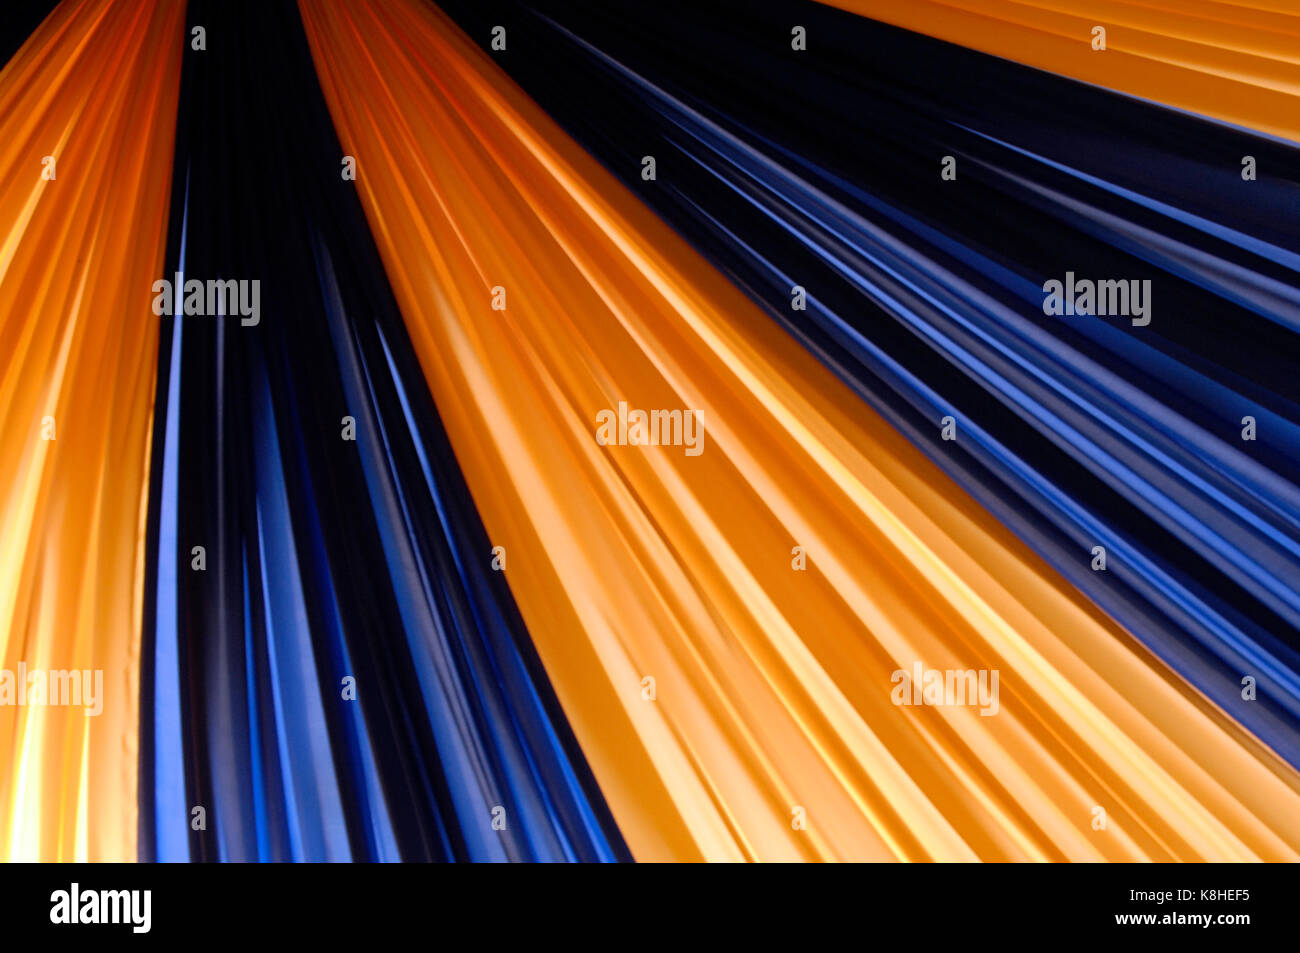 some blue and yellow coloured silk drapes or curtains forming the roof of a tented area & some blue and yellow coloured silk drapes or curtains forming the ...